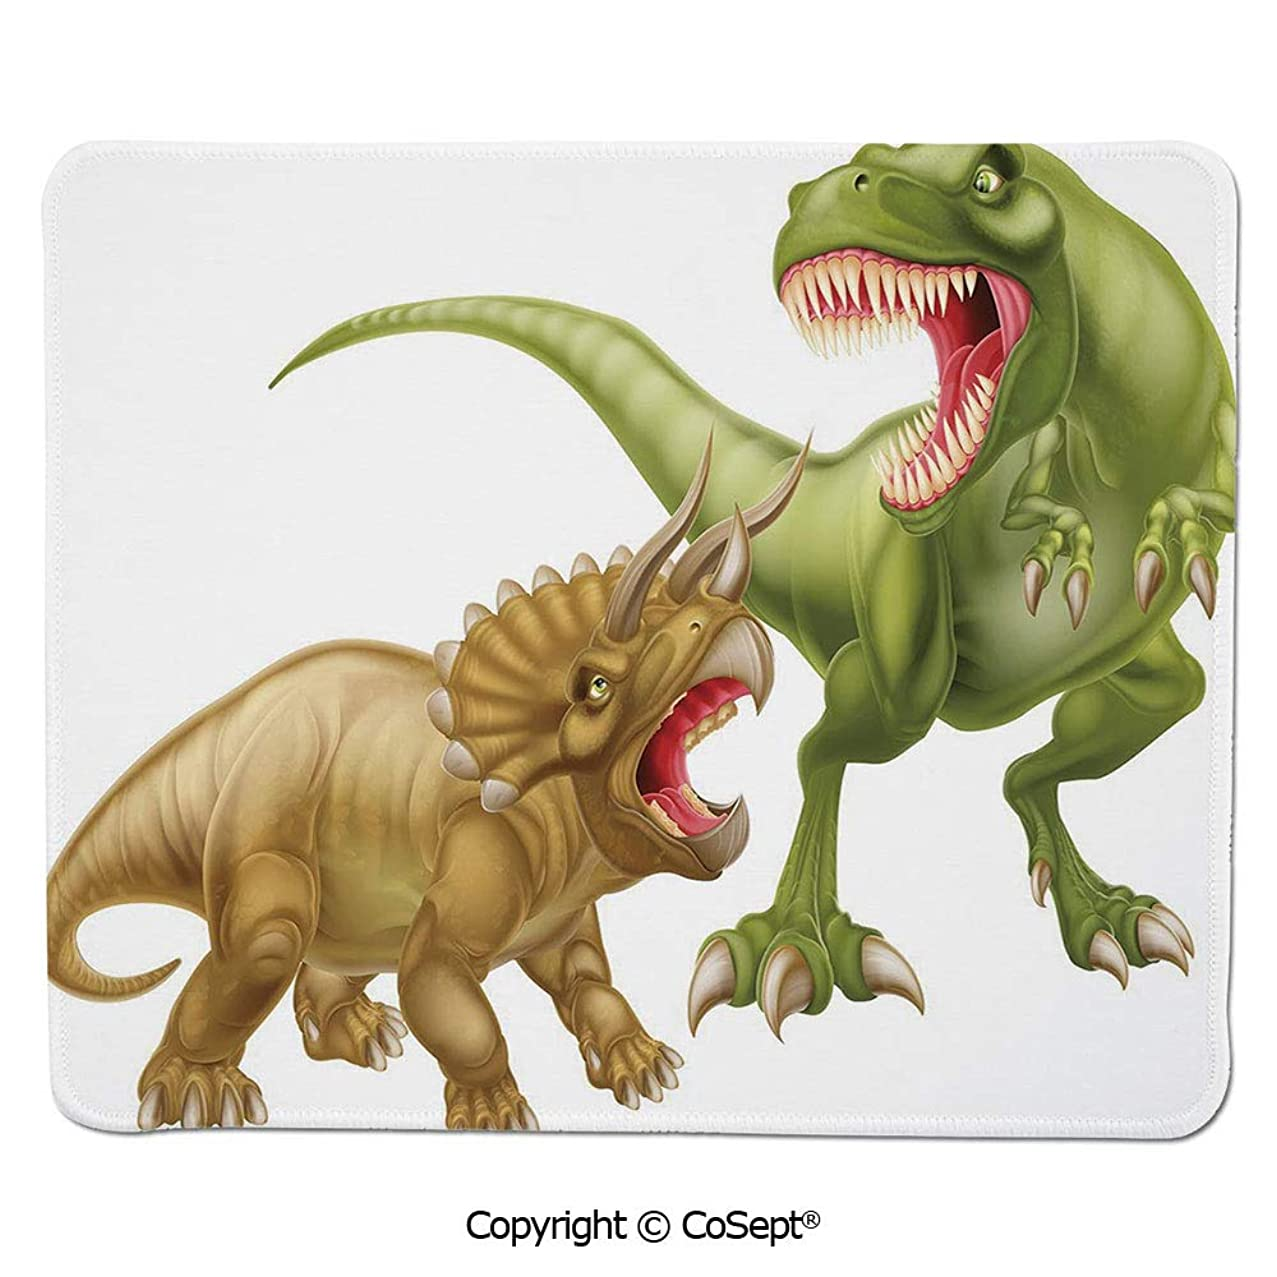 Mouse Pad,T Rex Versus Triceratops Fighting Scaring Each Other Wild Reptiles Decorative,Water-Resistant,Non-Slip Base,Ideal for Gaming (11.81